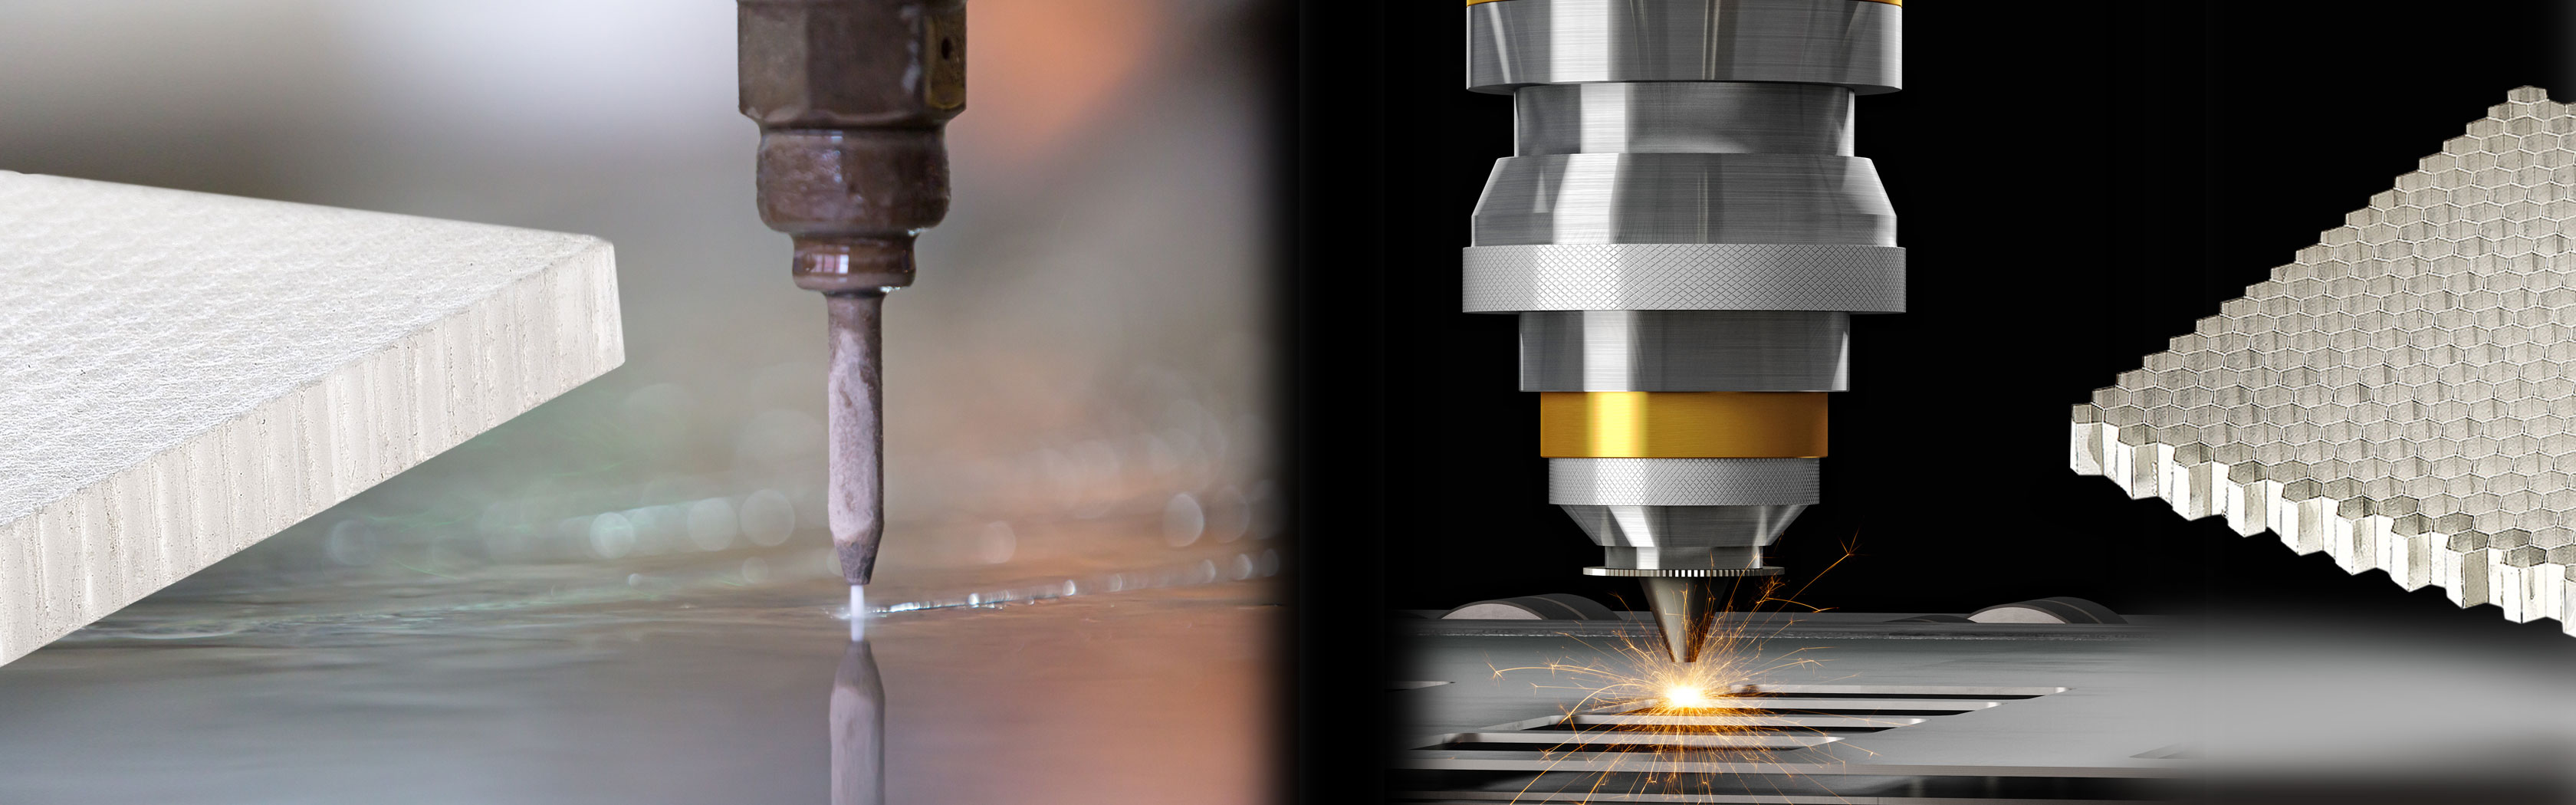 Water and Laster jet cutting are machines capable of slicing different materials using either a jet of water at high speed and pressure or a laser ray.